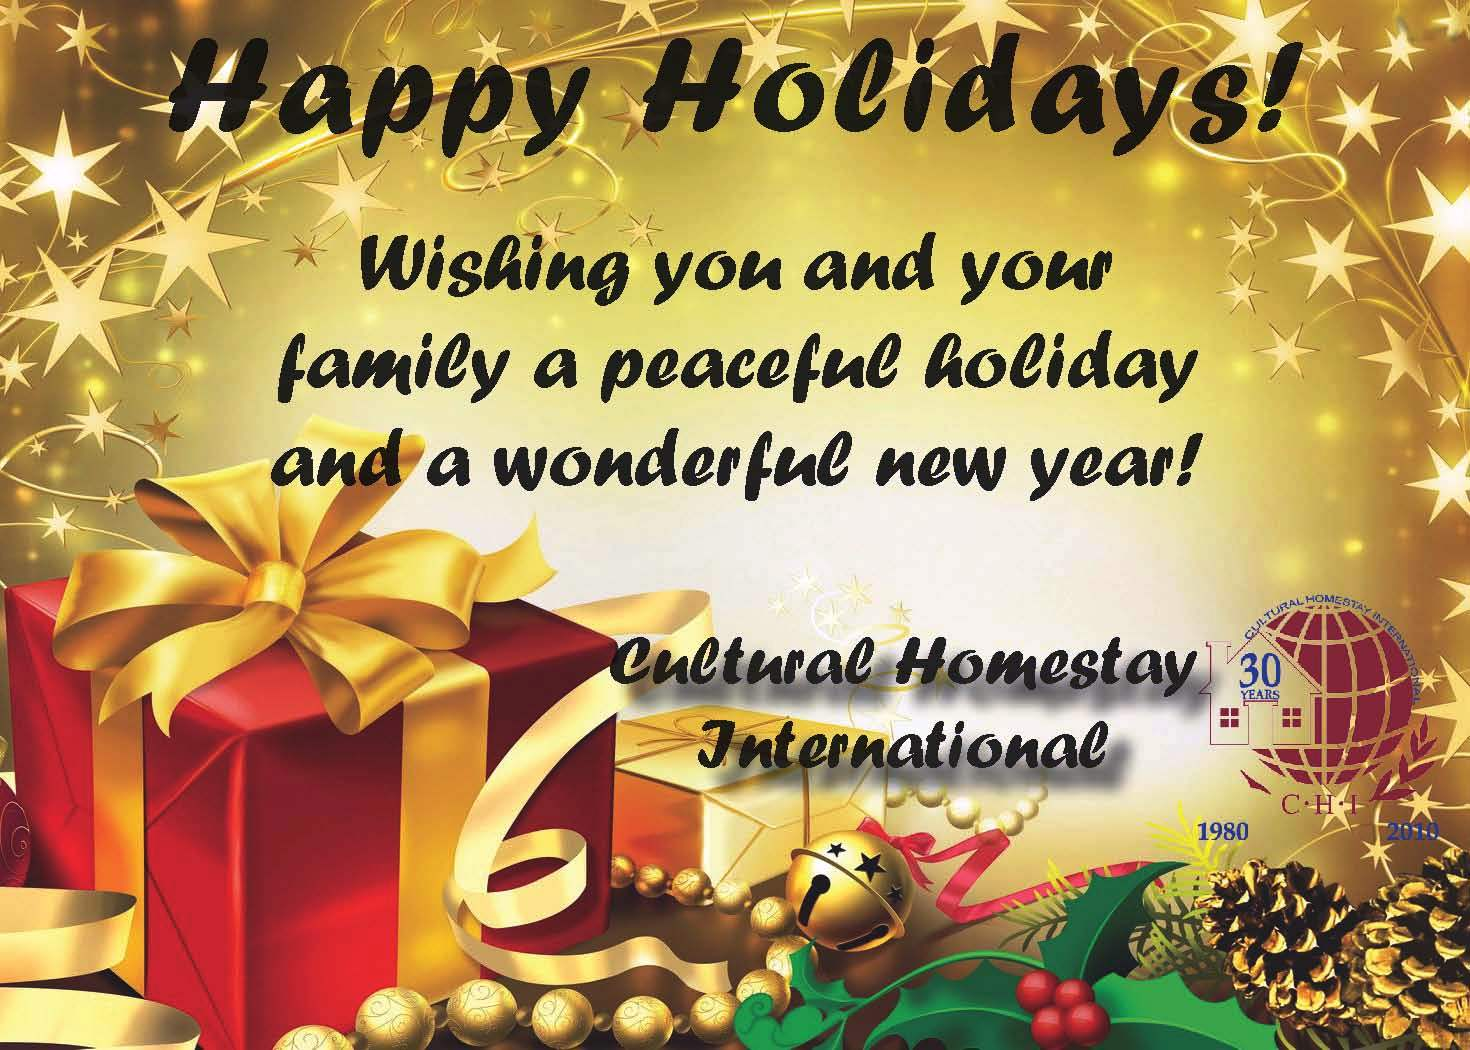 35 wonderful happy holidays greeting card pictures happy holidays wishing you and your family a peaceful holiday greeting card m4hsunfo